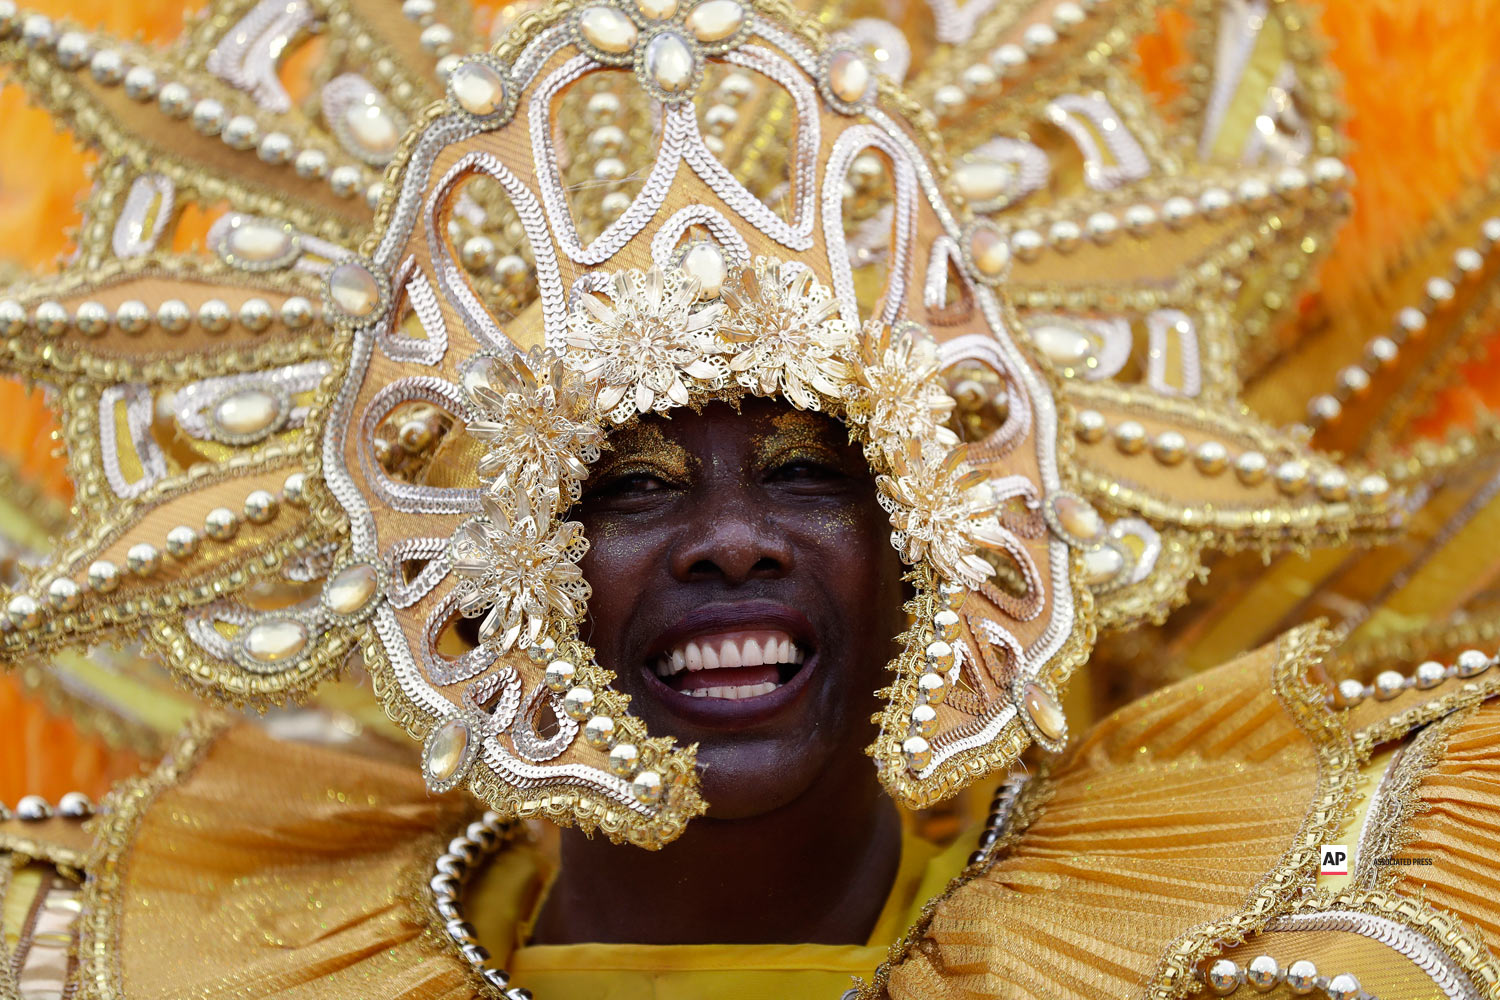 A dancer from the Tom Maior samba school performs during a carnival parade in Sao Paulo, Brazil, Saturday, March 2, 2019. (AP Photo/Andre Penner)